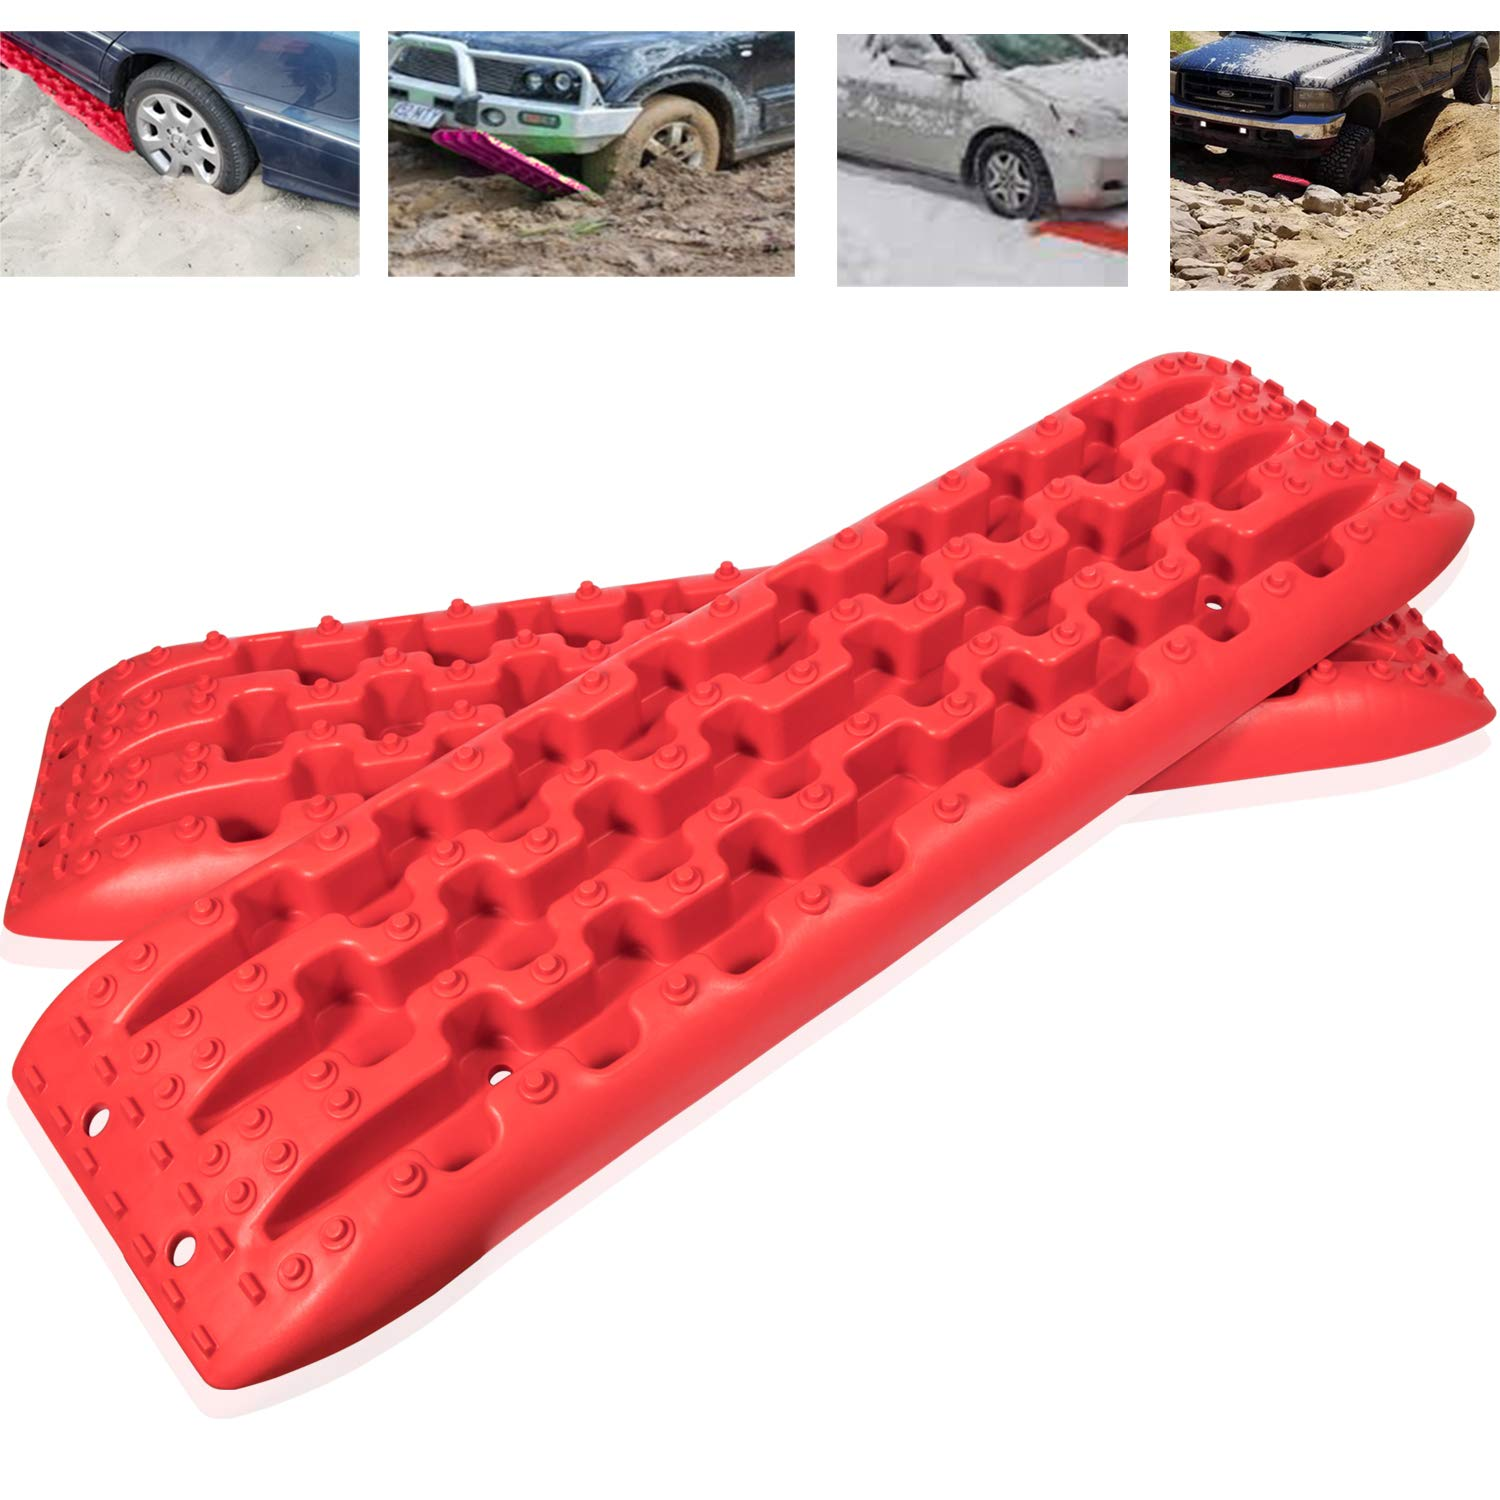 2 pcs Auto Rocovery Traction Mats Tires Traction Boards Tires Ladder For Off-Road Mud,Sand, Snow Vehicle Extraction by Camoo